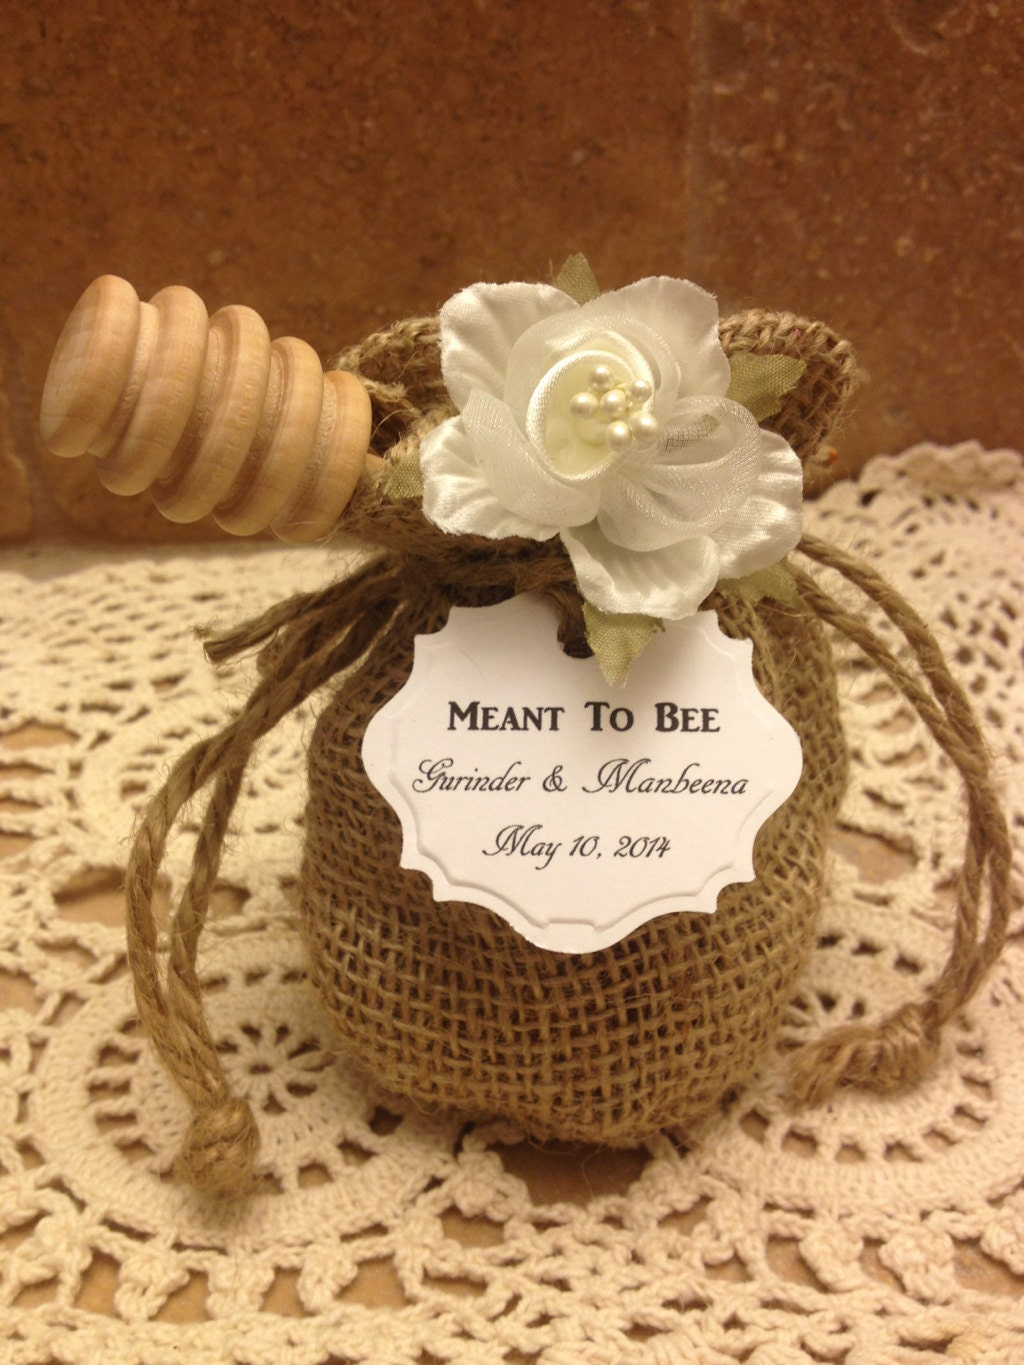 20 qty meant to bee honey wedding shower favors with dipper for Honey bee wedding favors